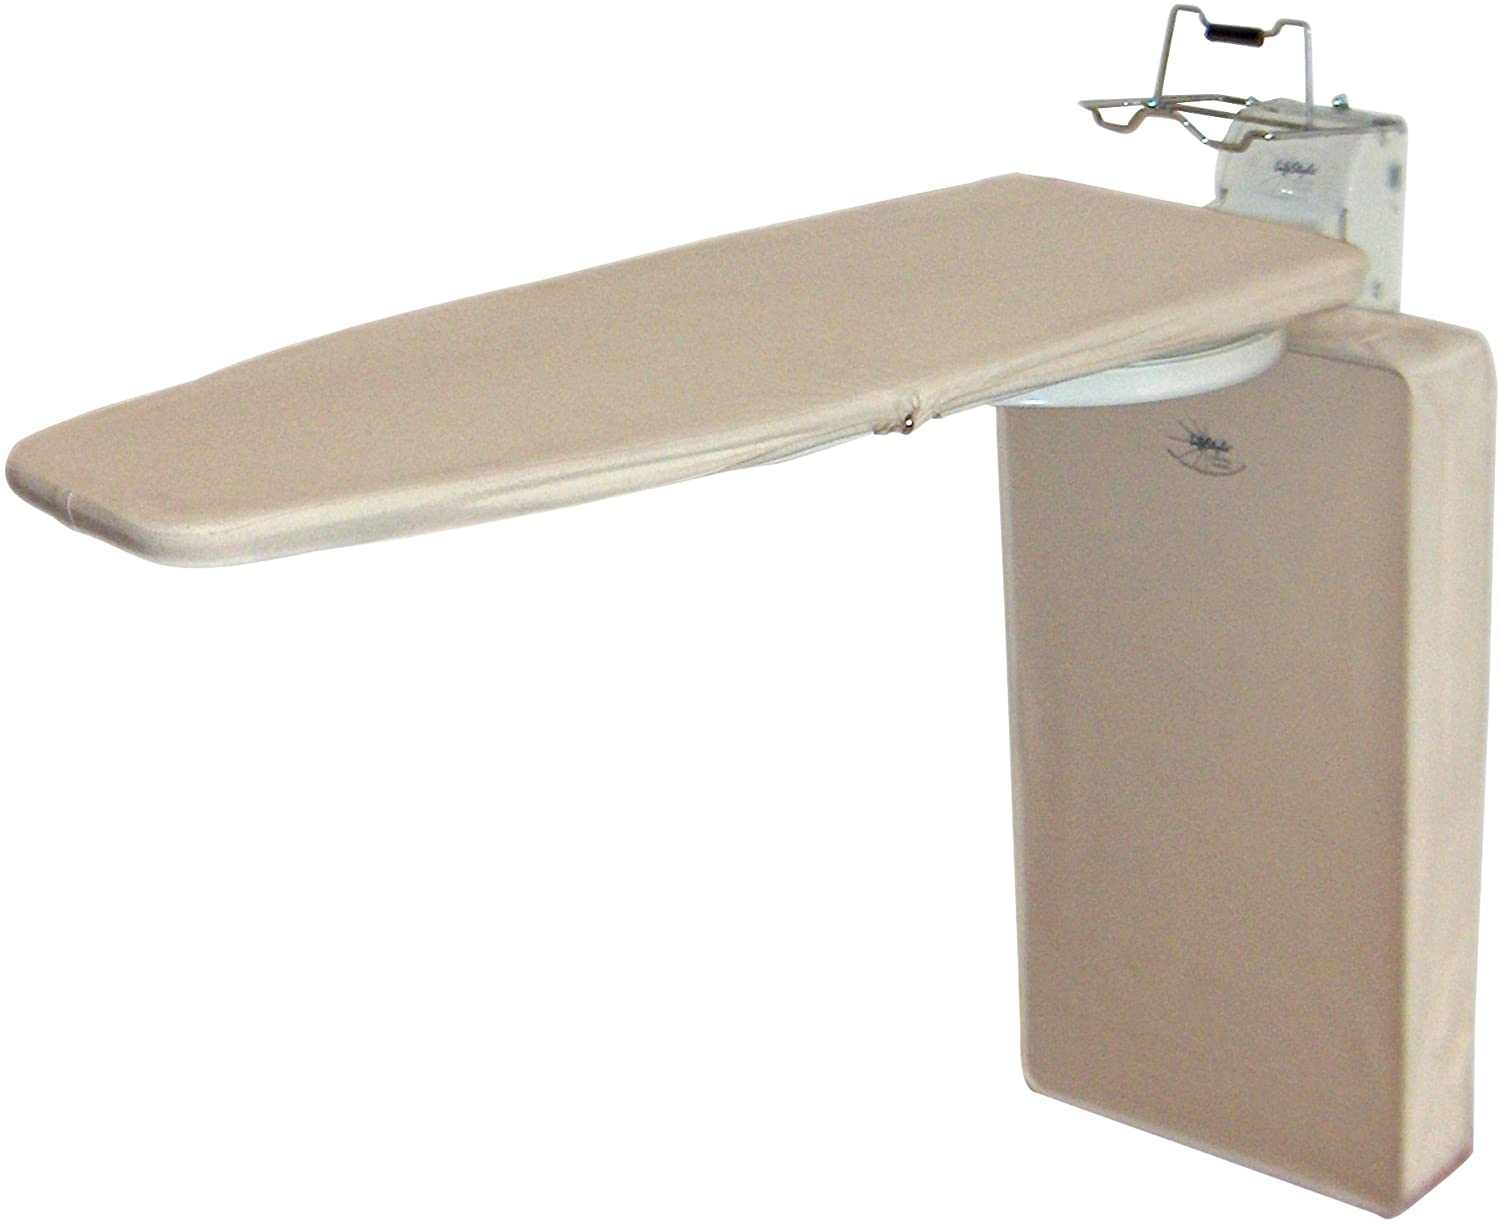 Fold-down/fold-away Ironing Board by Lifestyle